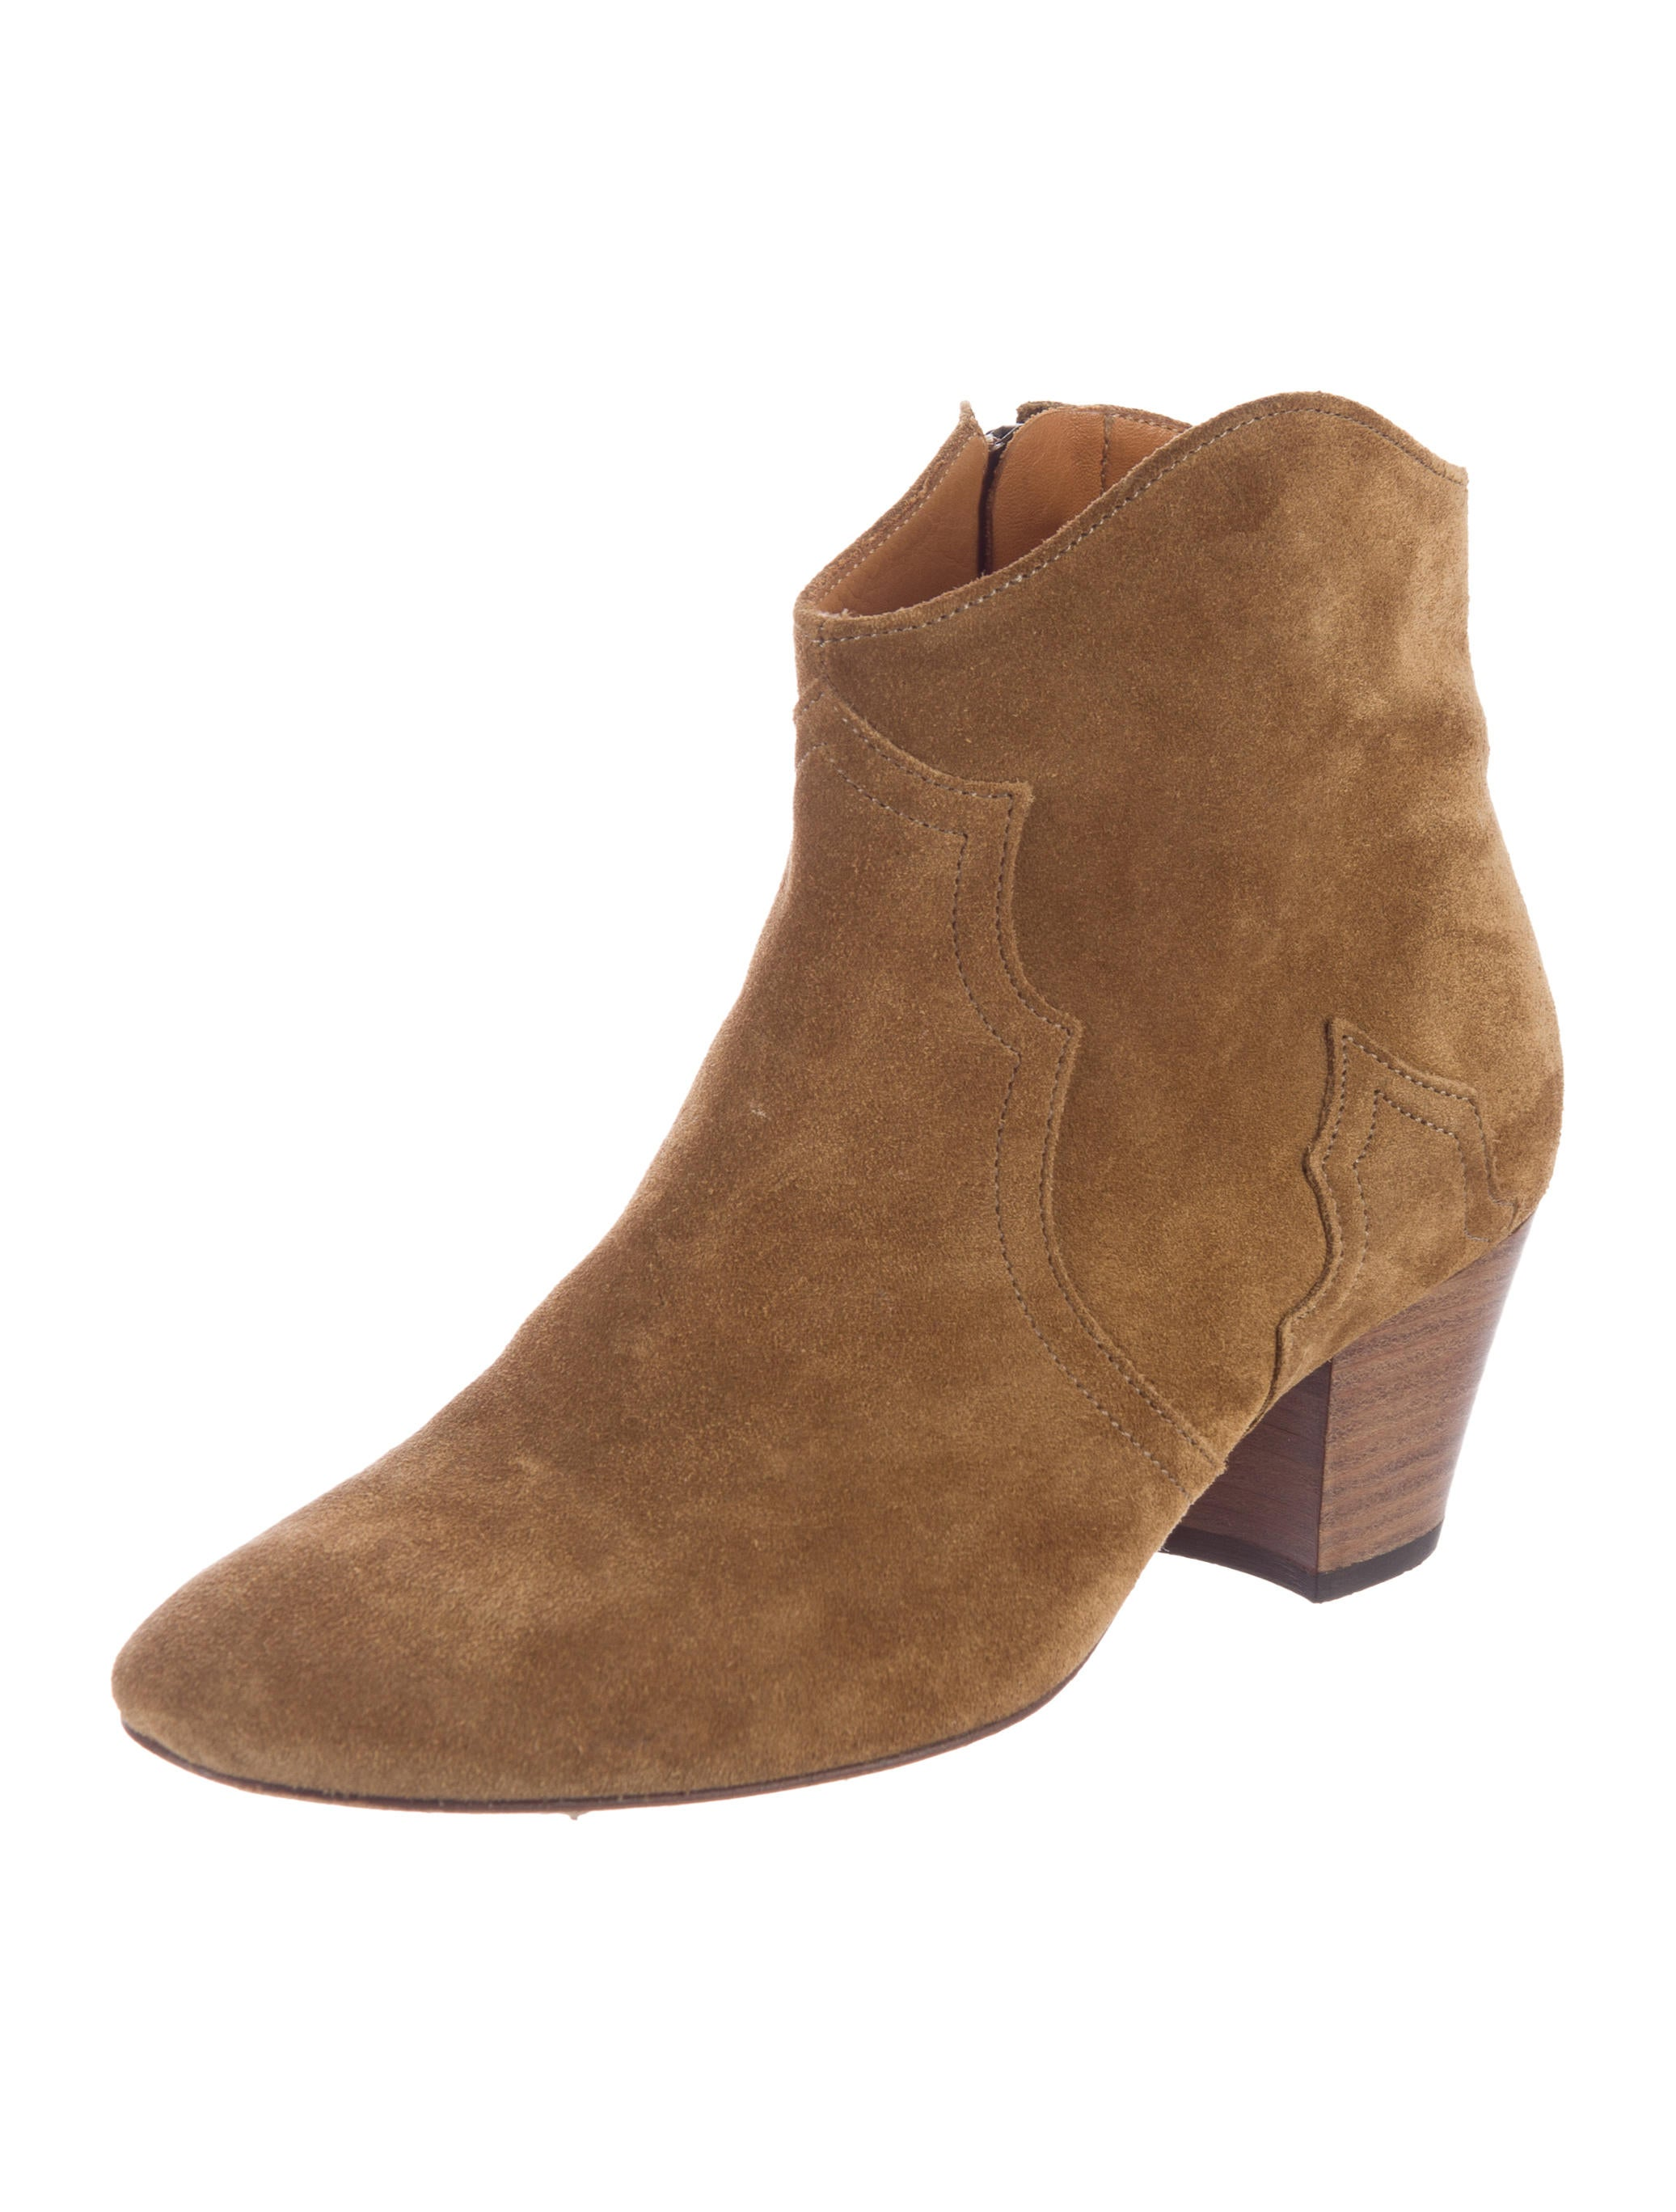 marant dicker suede ankle boots shoes isa39727